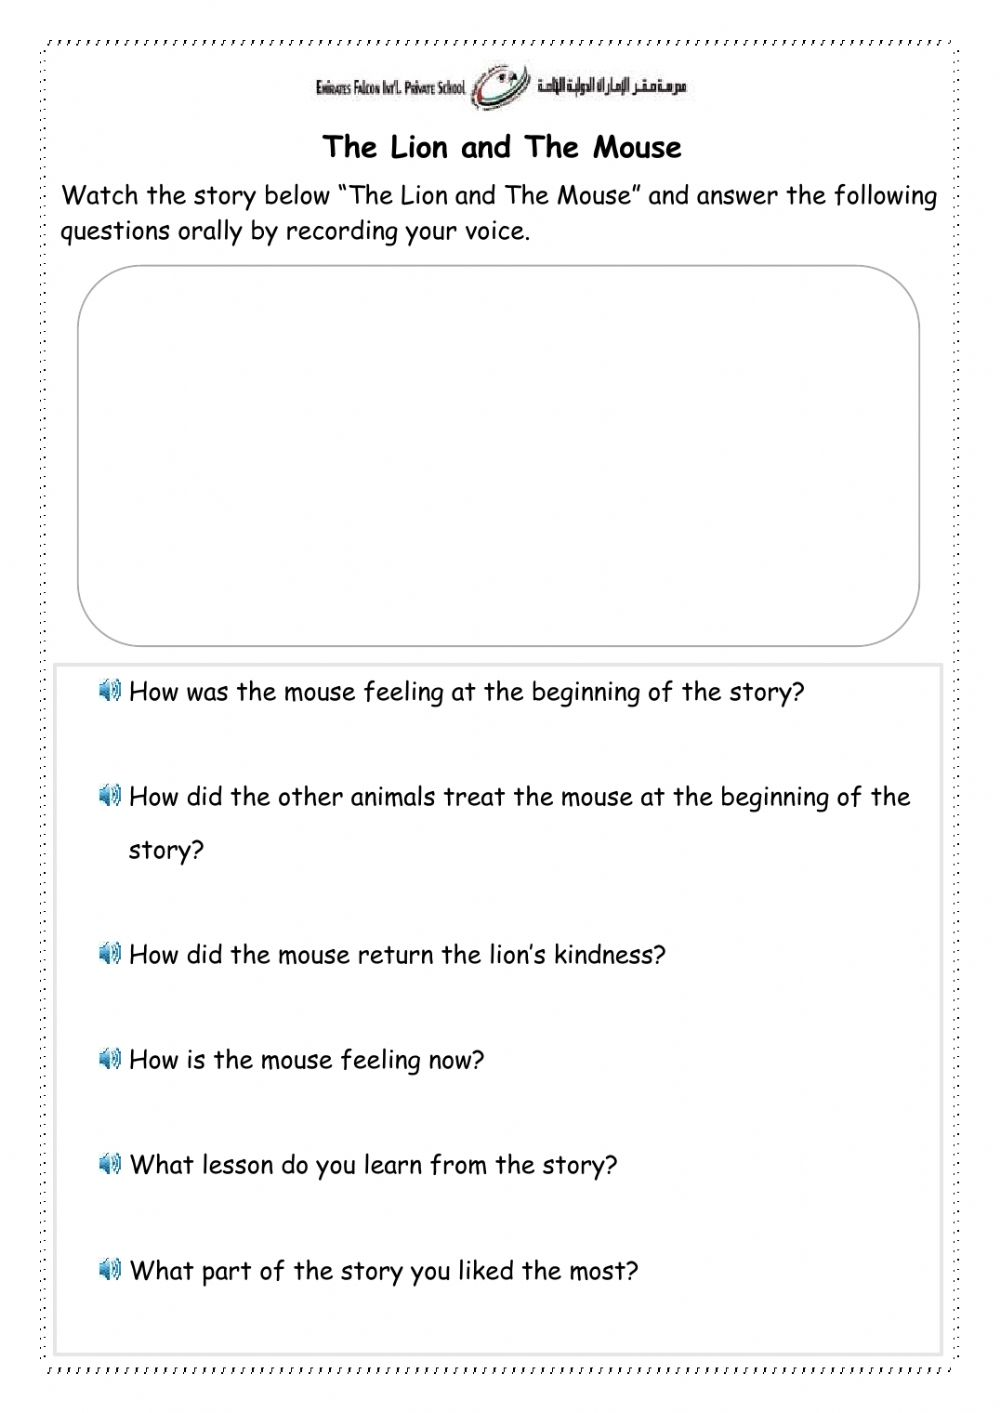 medium resolution of The Lion and The Mouse worksheet for Grade 1